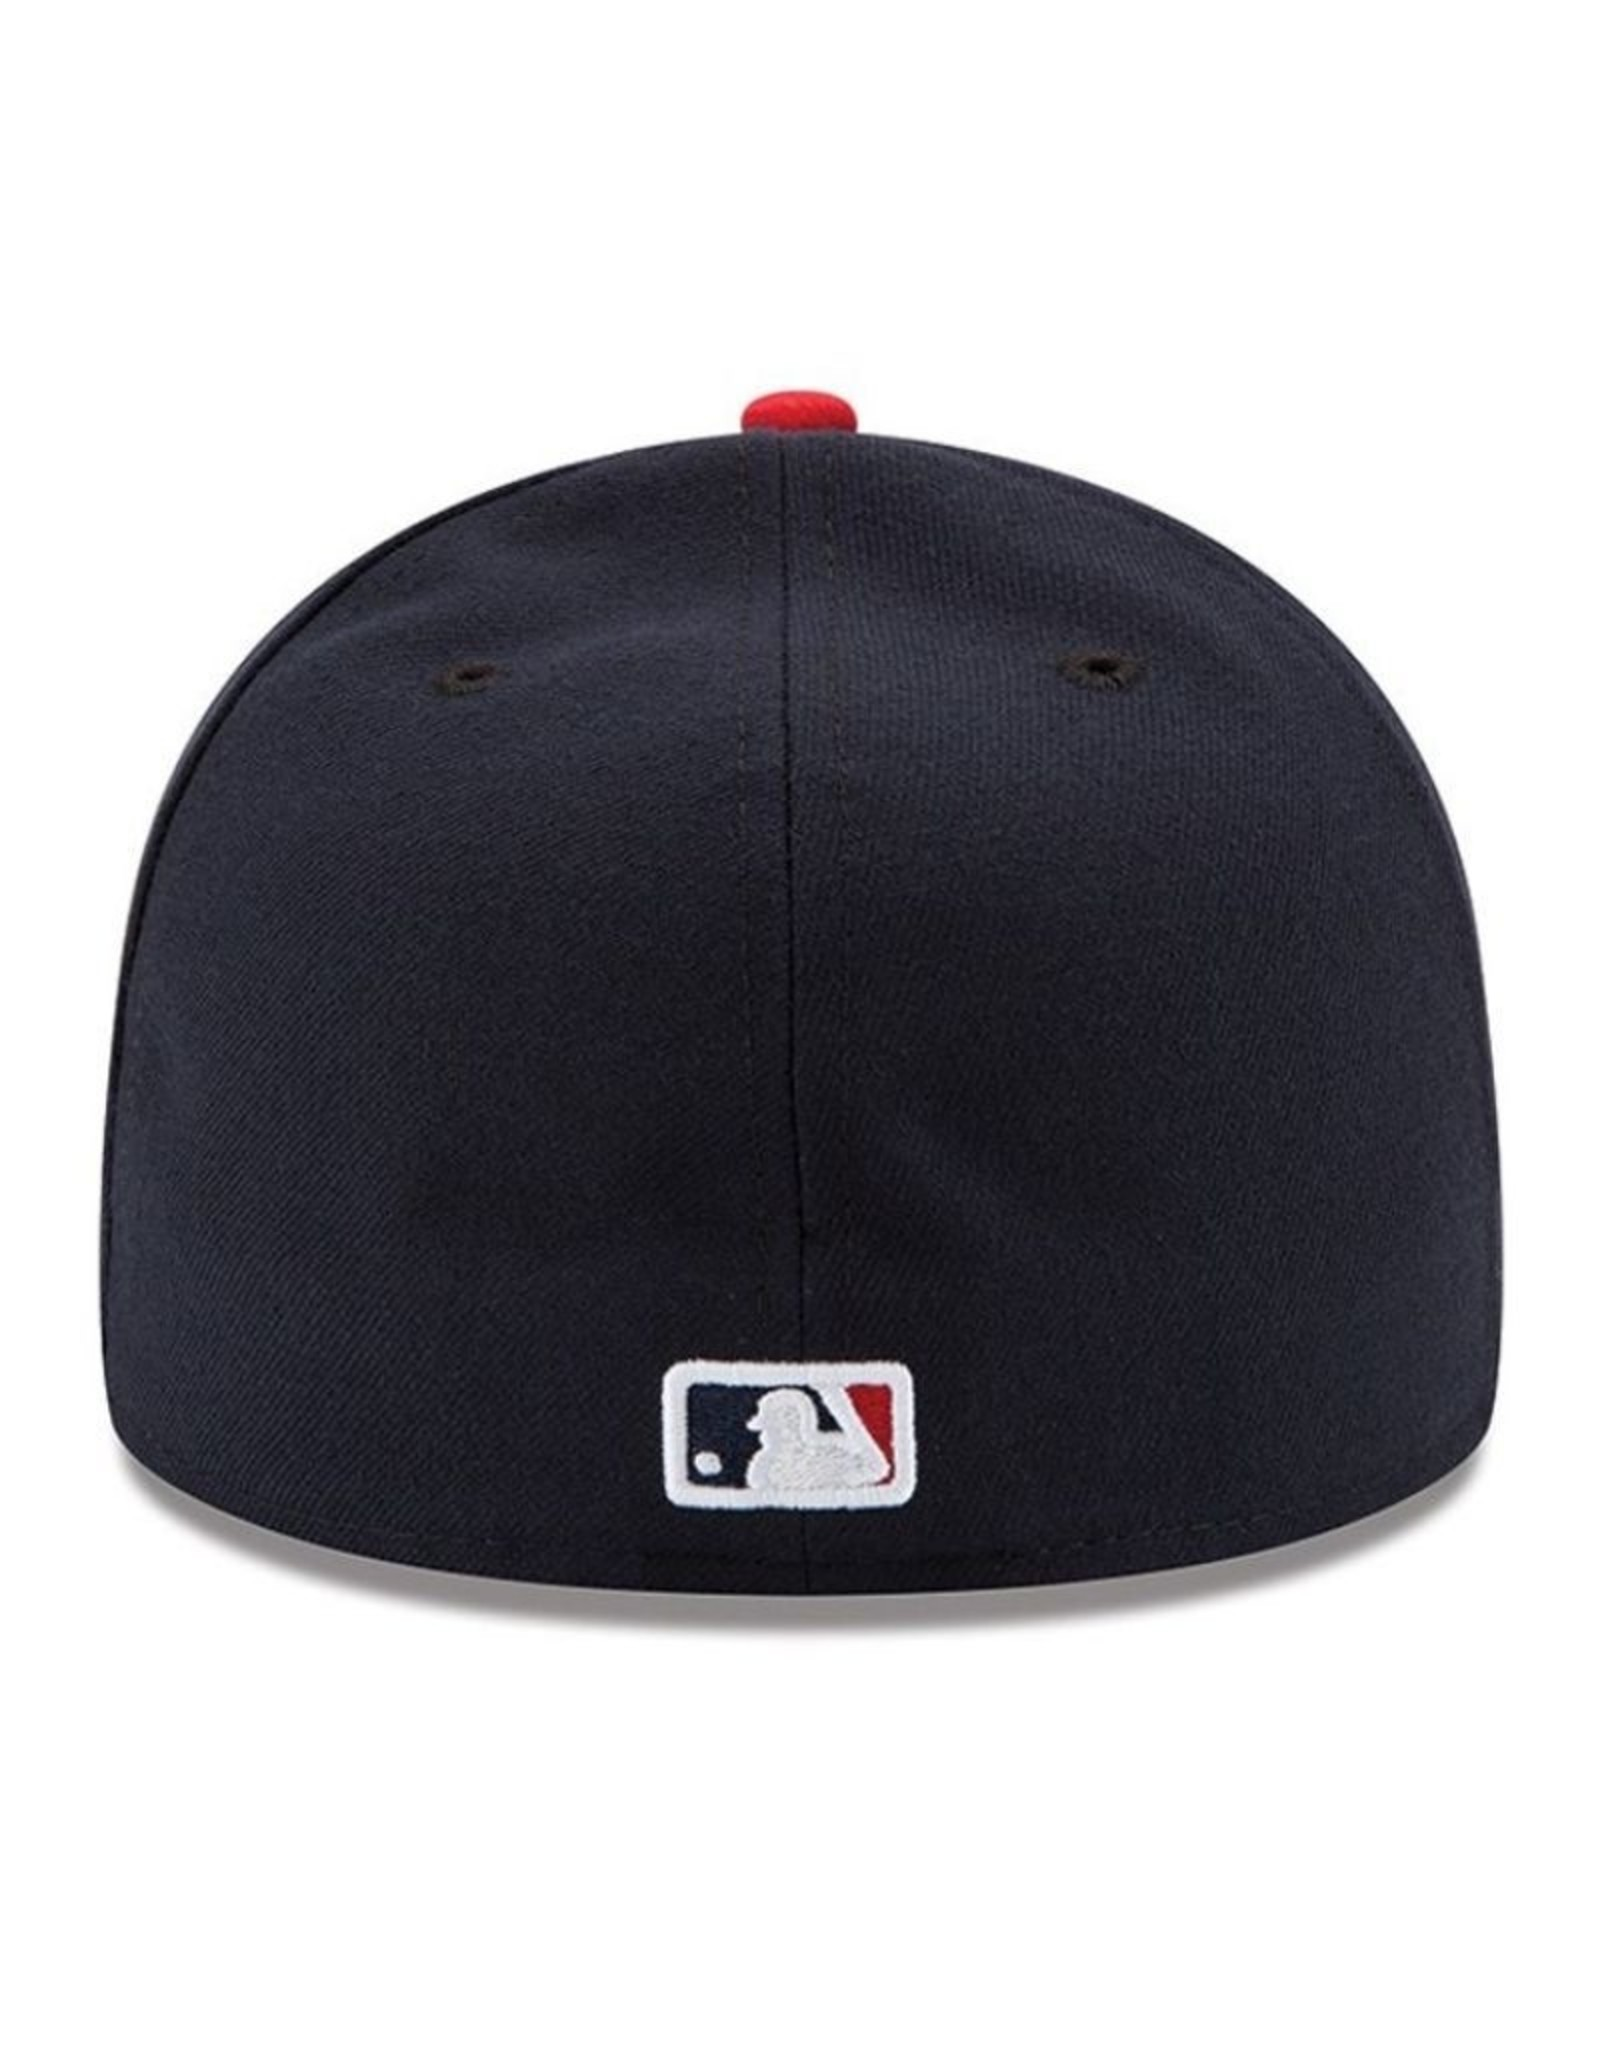 New Era On-Field Authentic 59FIFTY Home Hat Minnesota Twins Navy